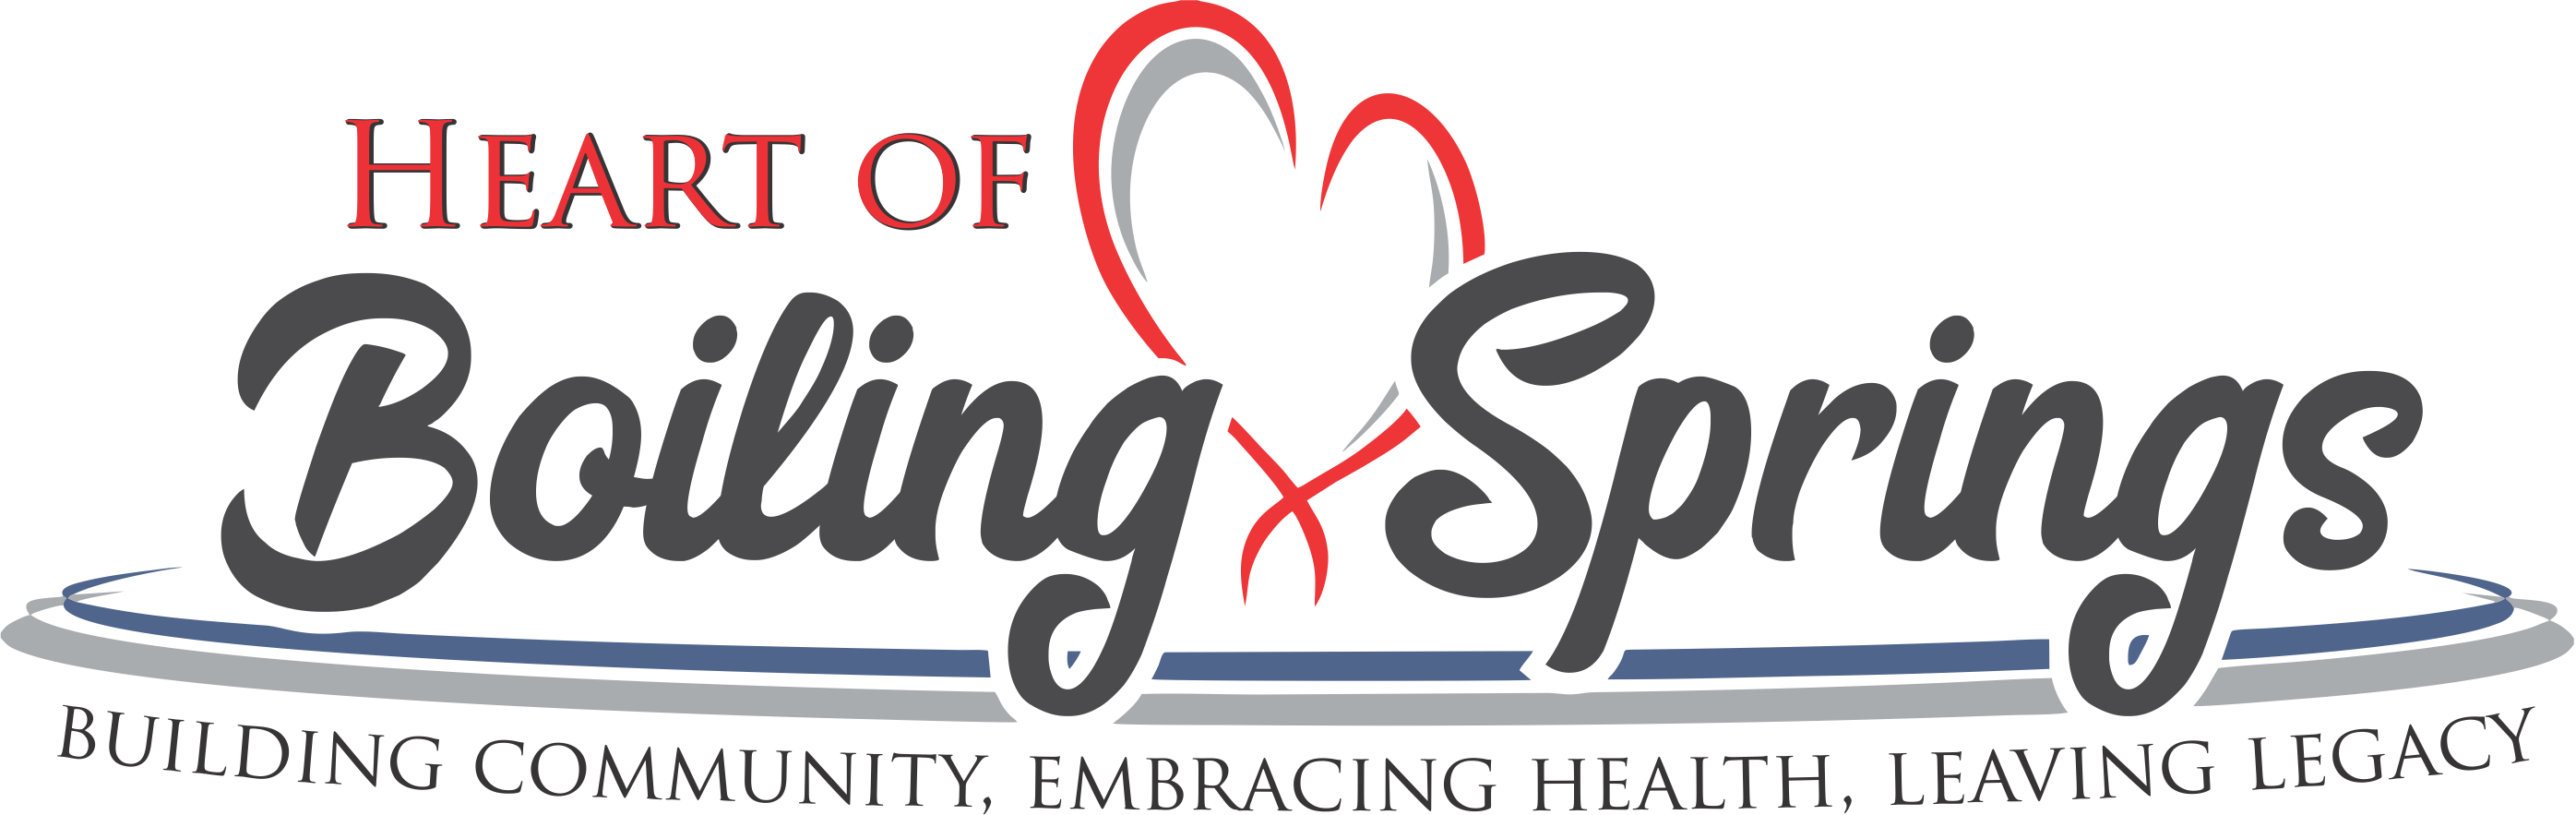 Heart of Boiling Springs